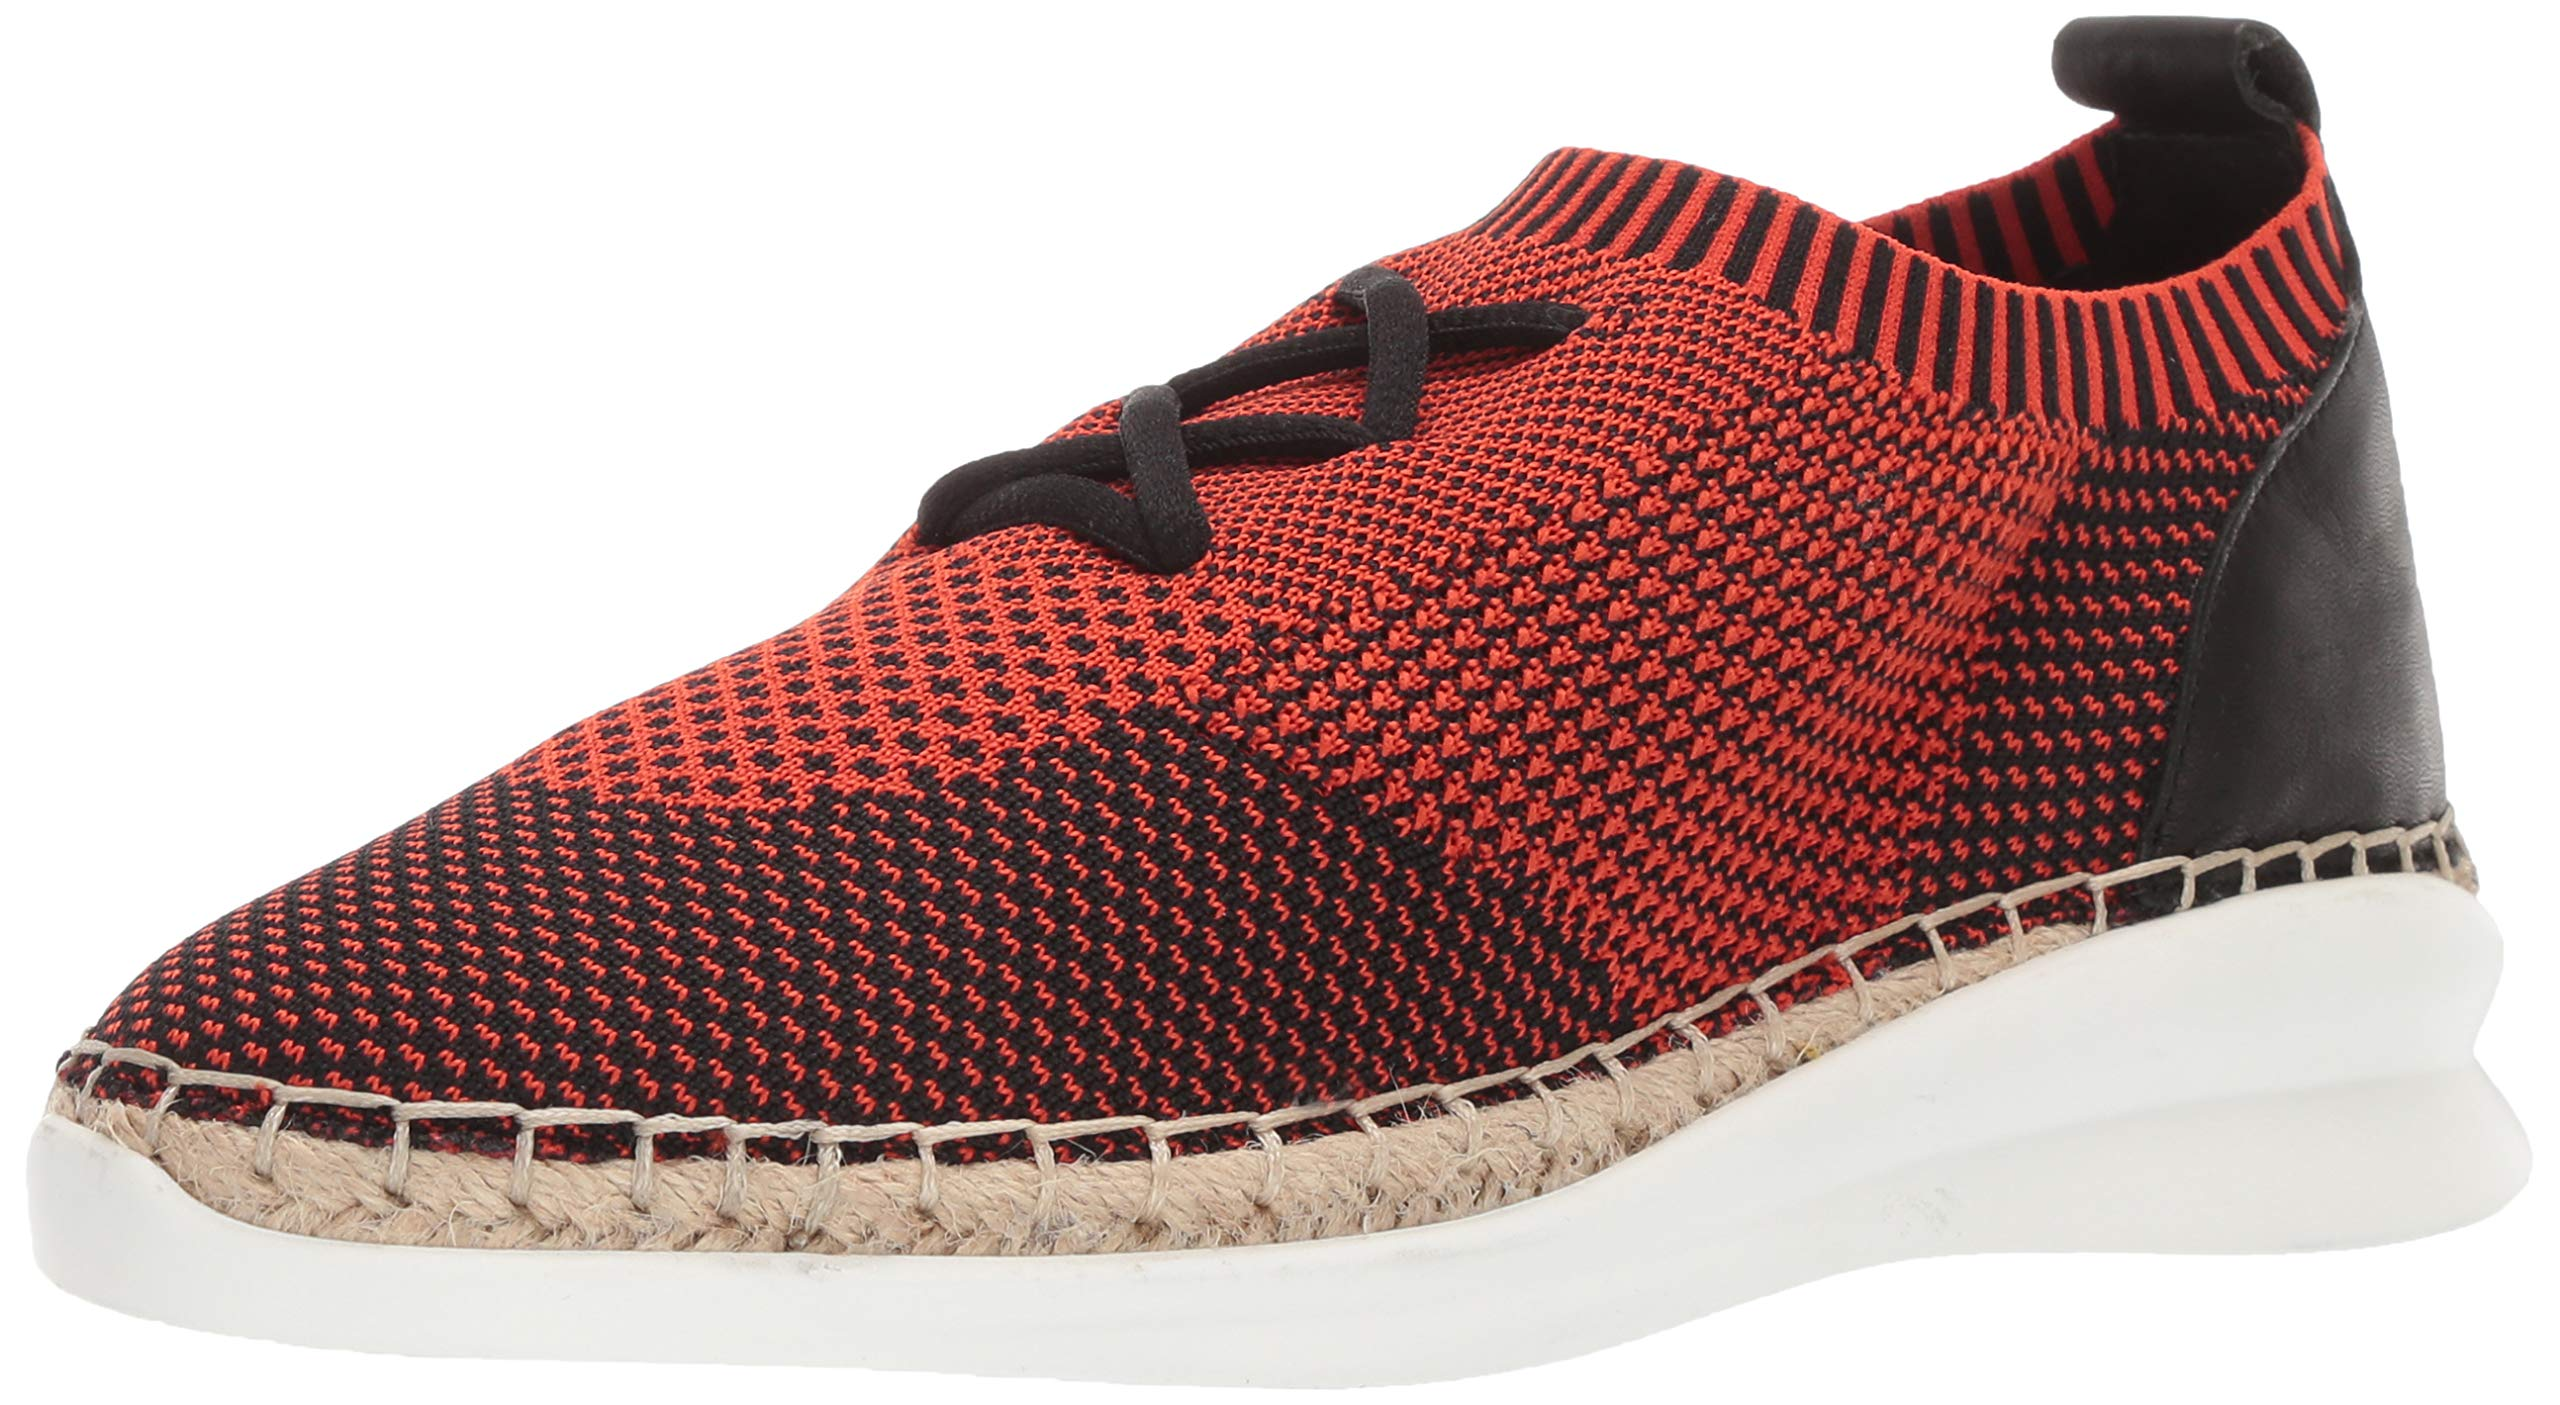 Vince Camuto Para mujeres tenis affina, dulce, picante - Elige talla Color